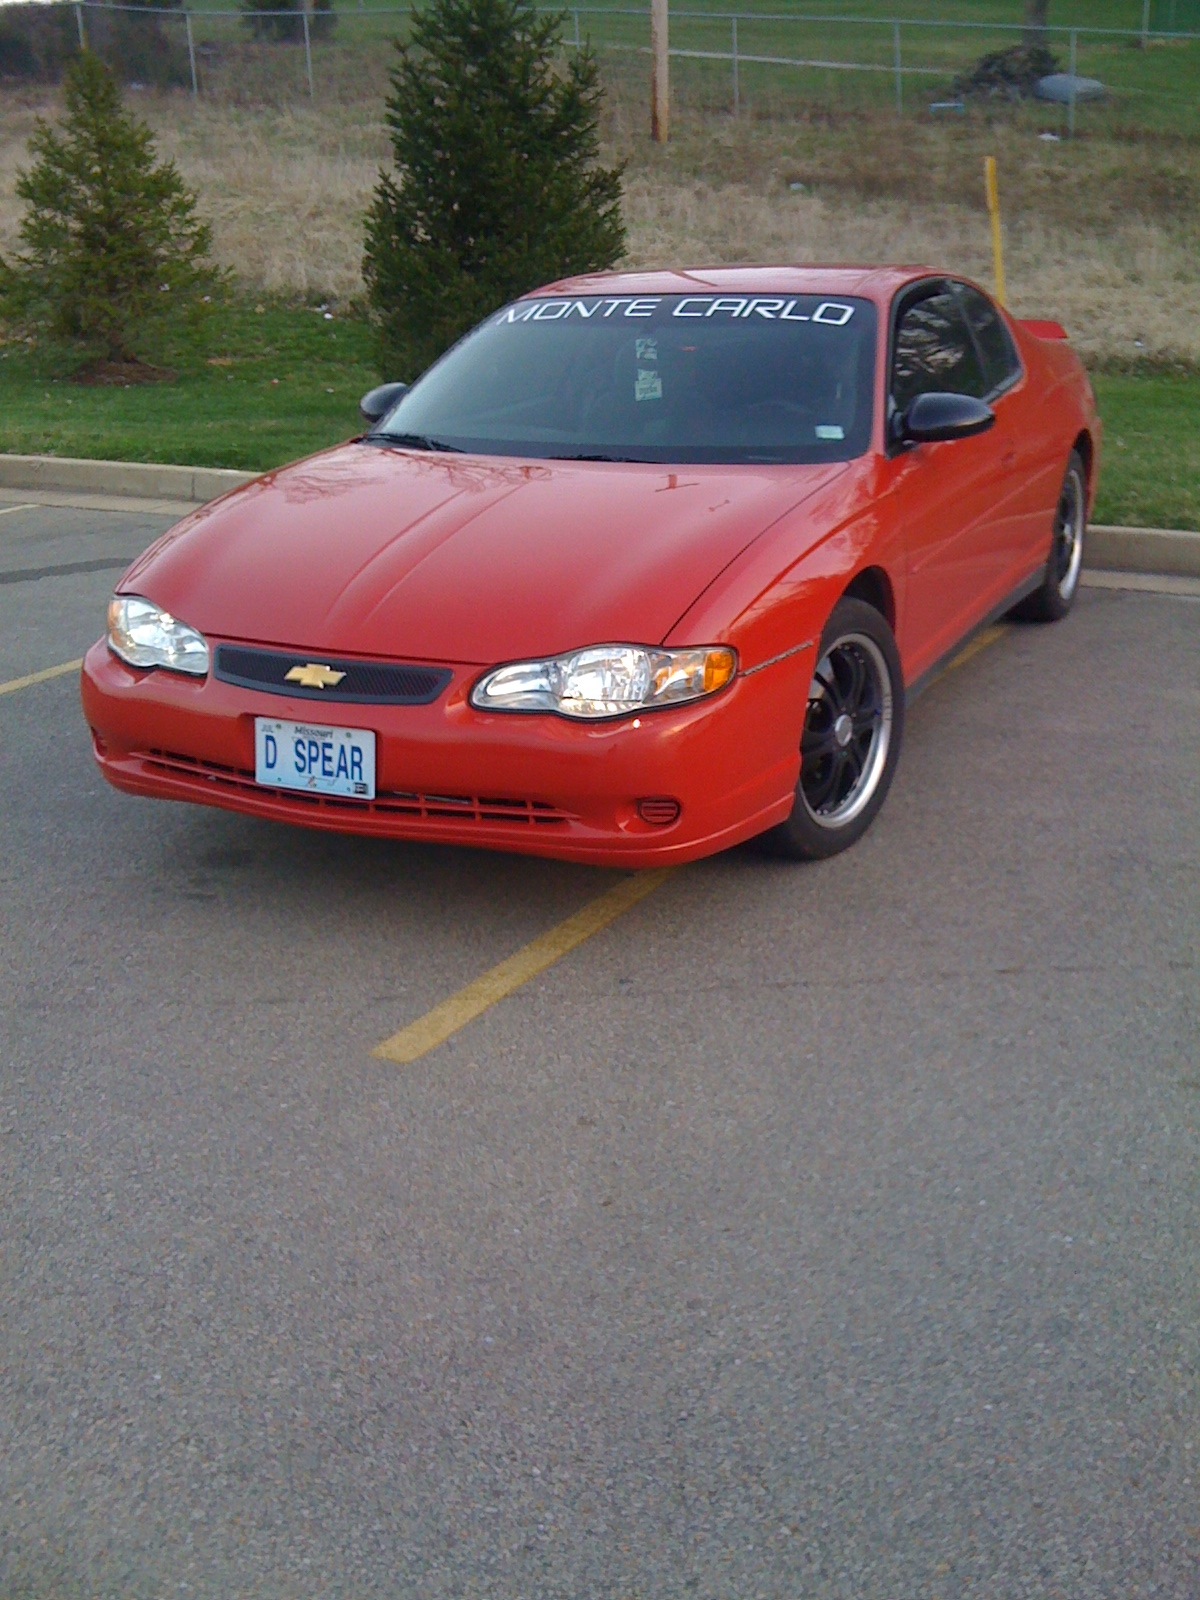 term1991's 2003 Chevrolet Monte Carlo